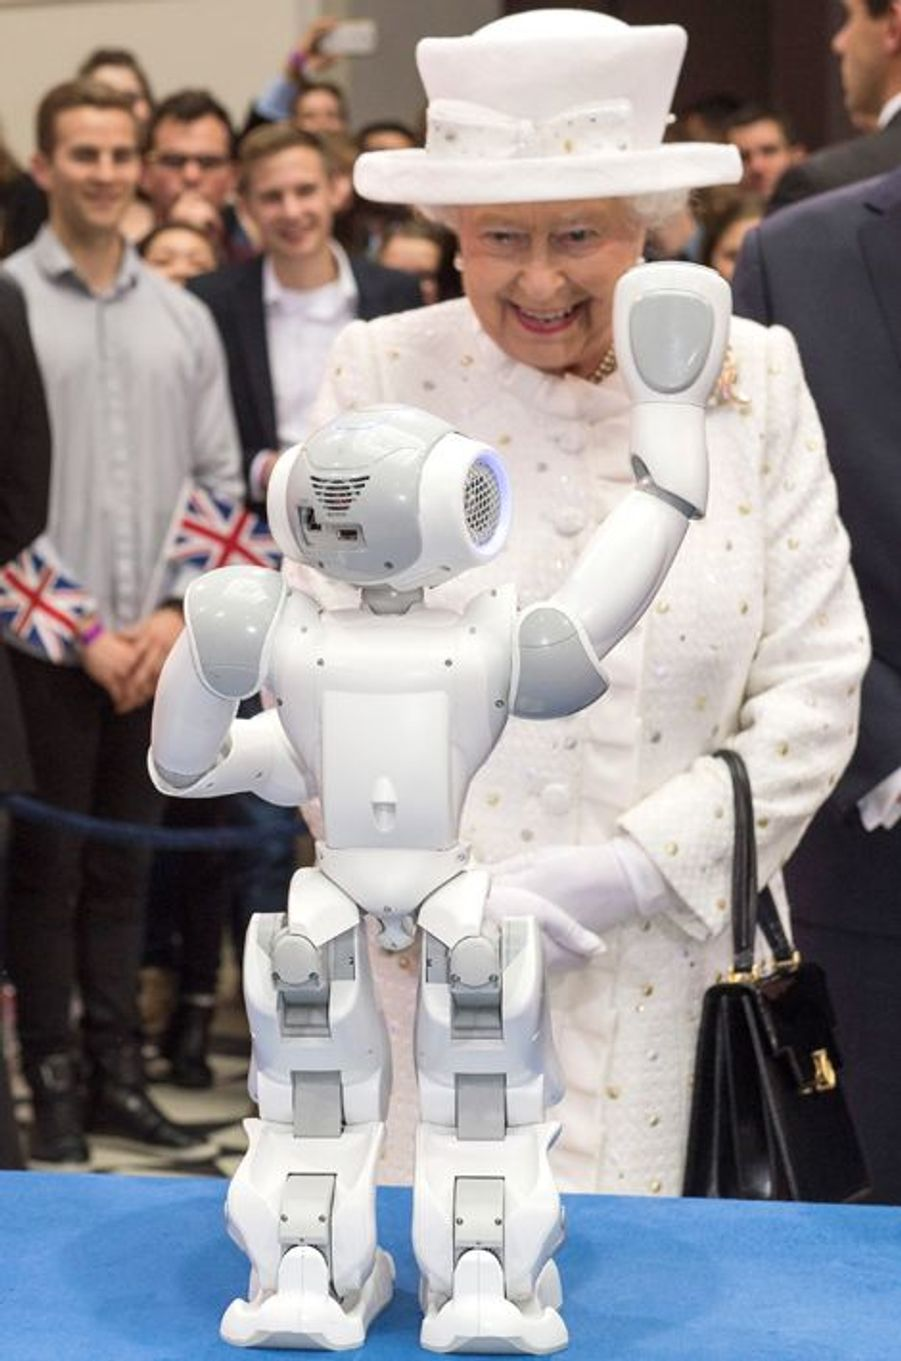 La reine Elizabeth II à l'Université technique de Berlin, le 24 juin 2015